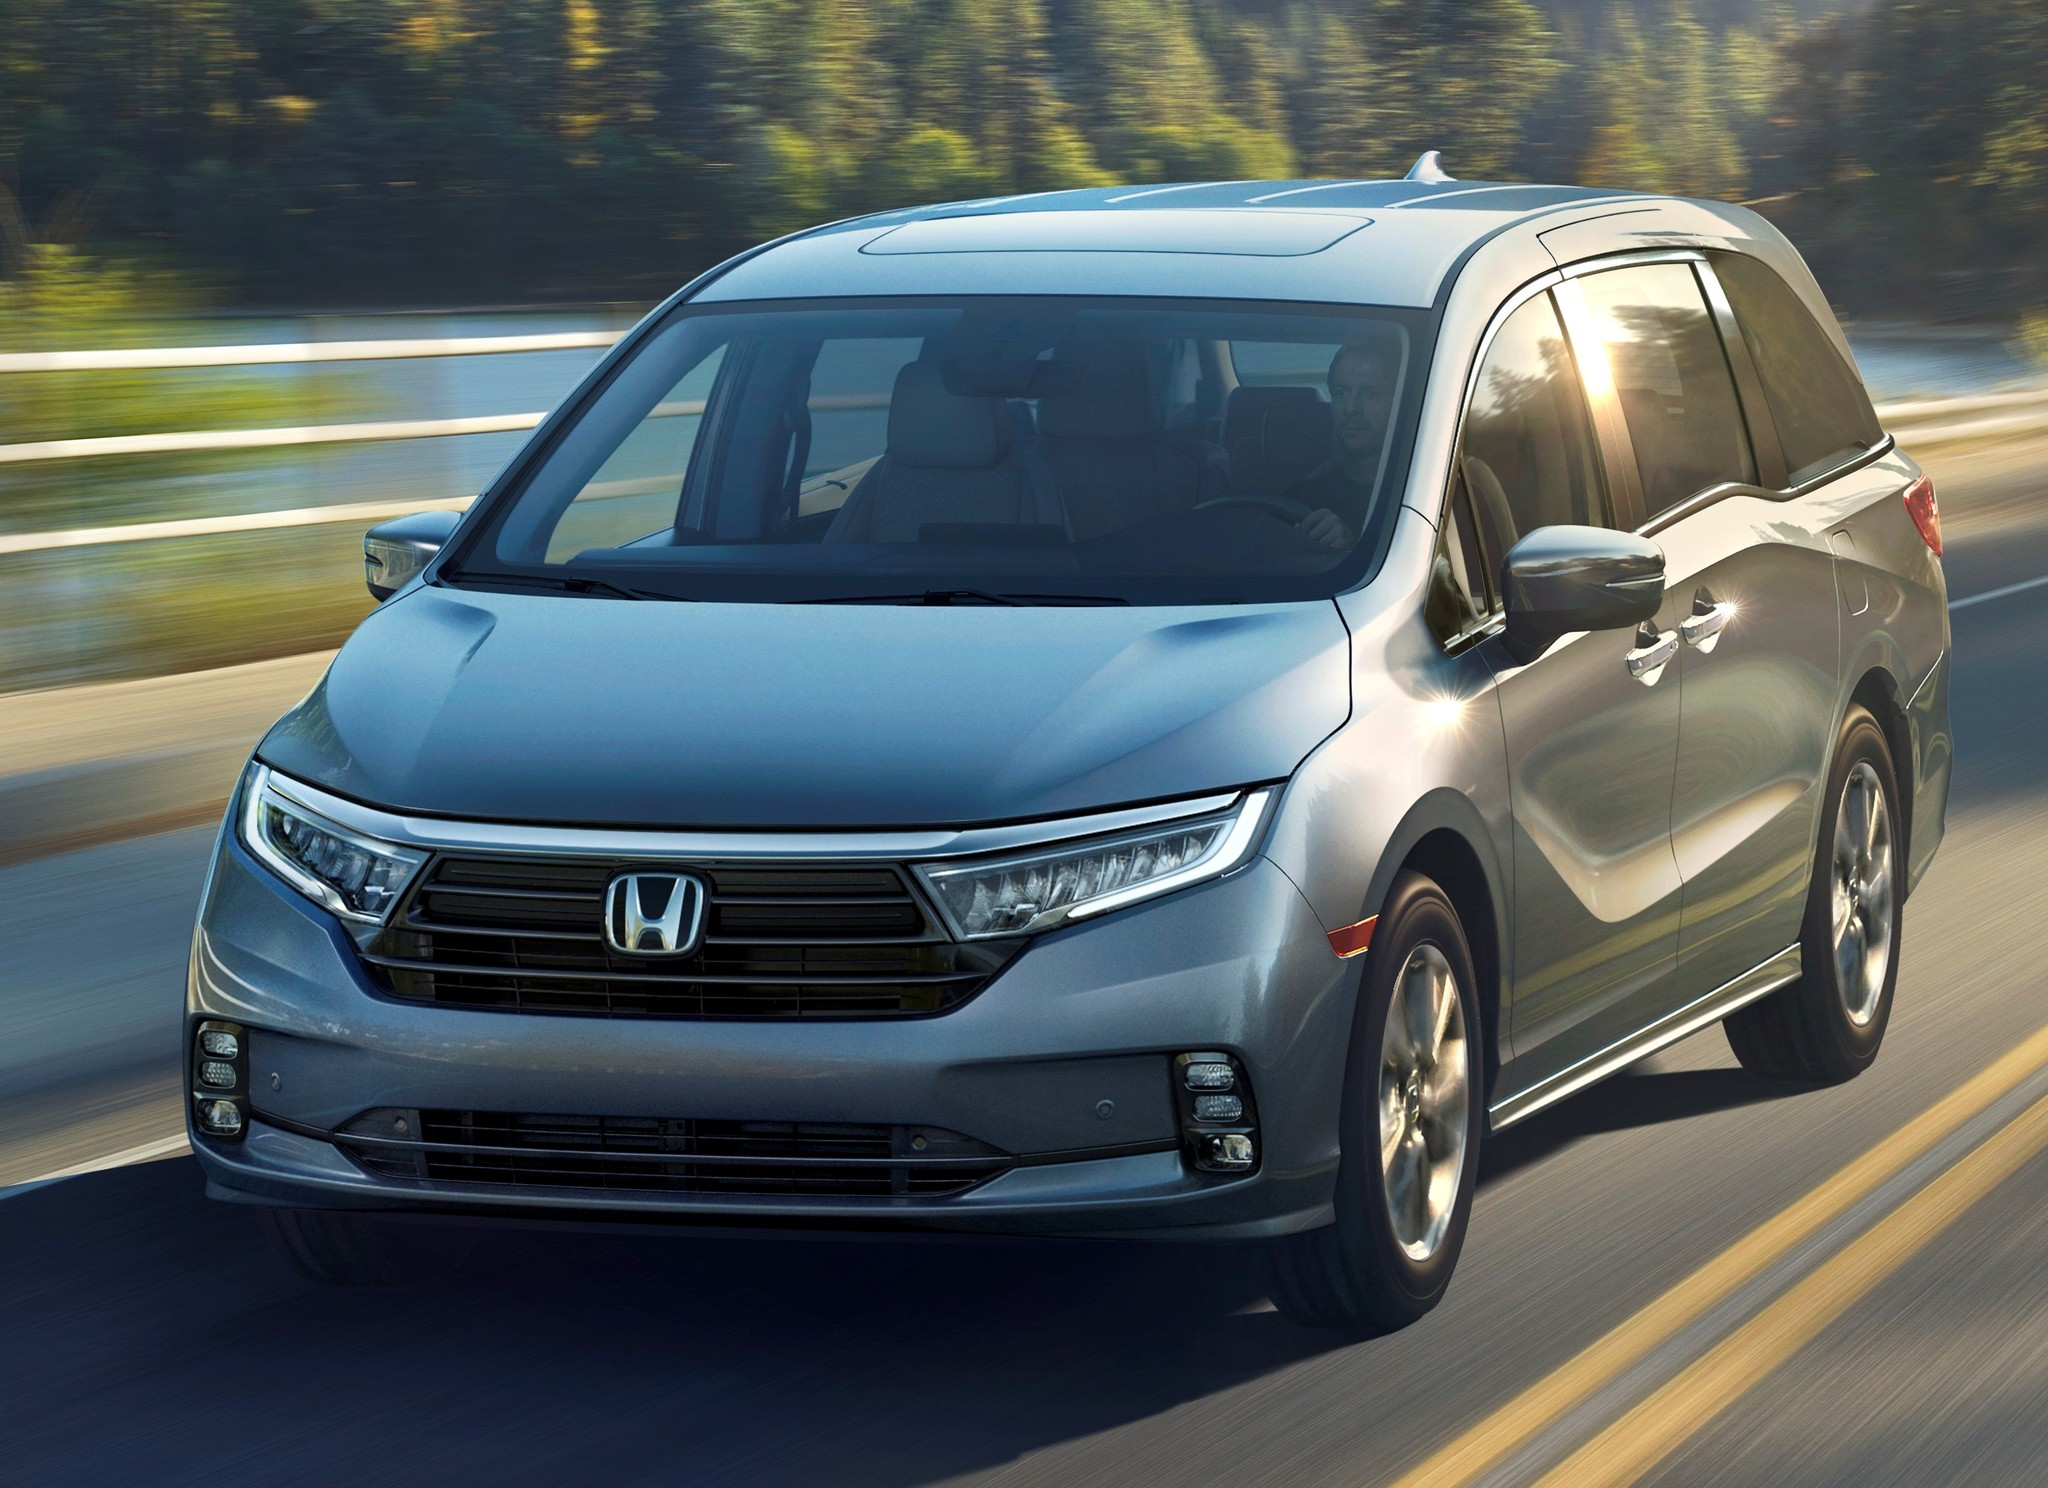 2021 Honda Odyssey facelift: Less ugly, more safety